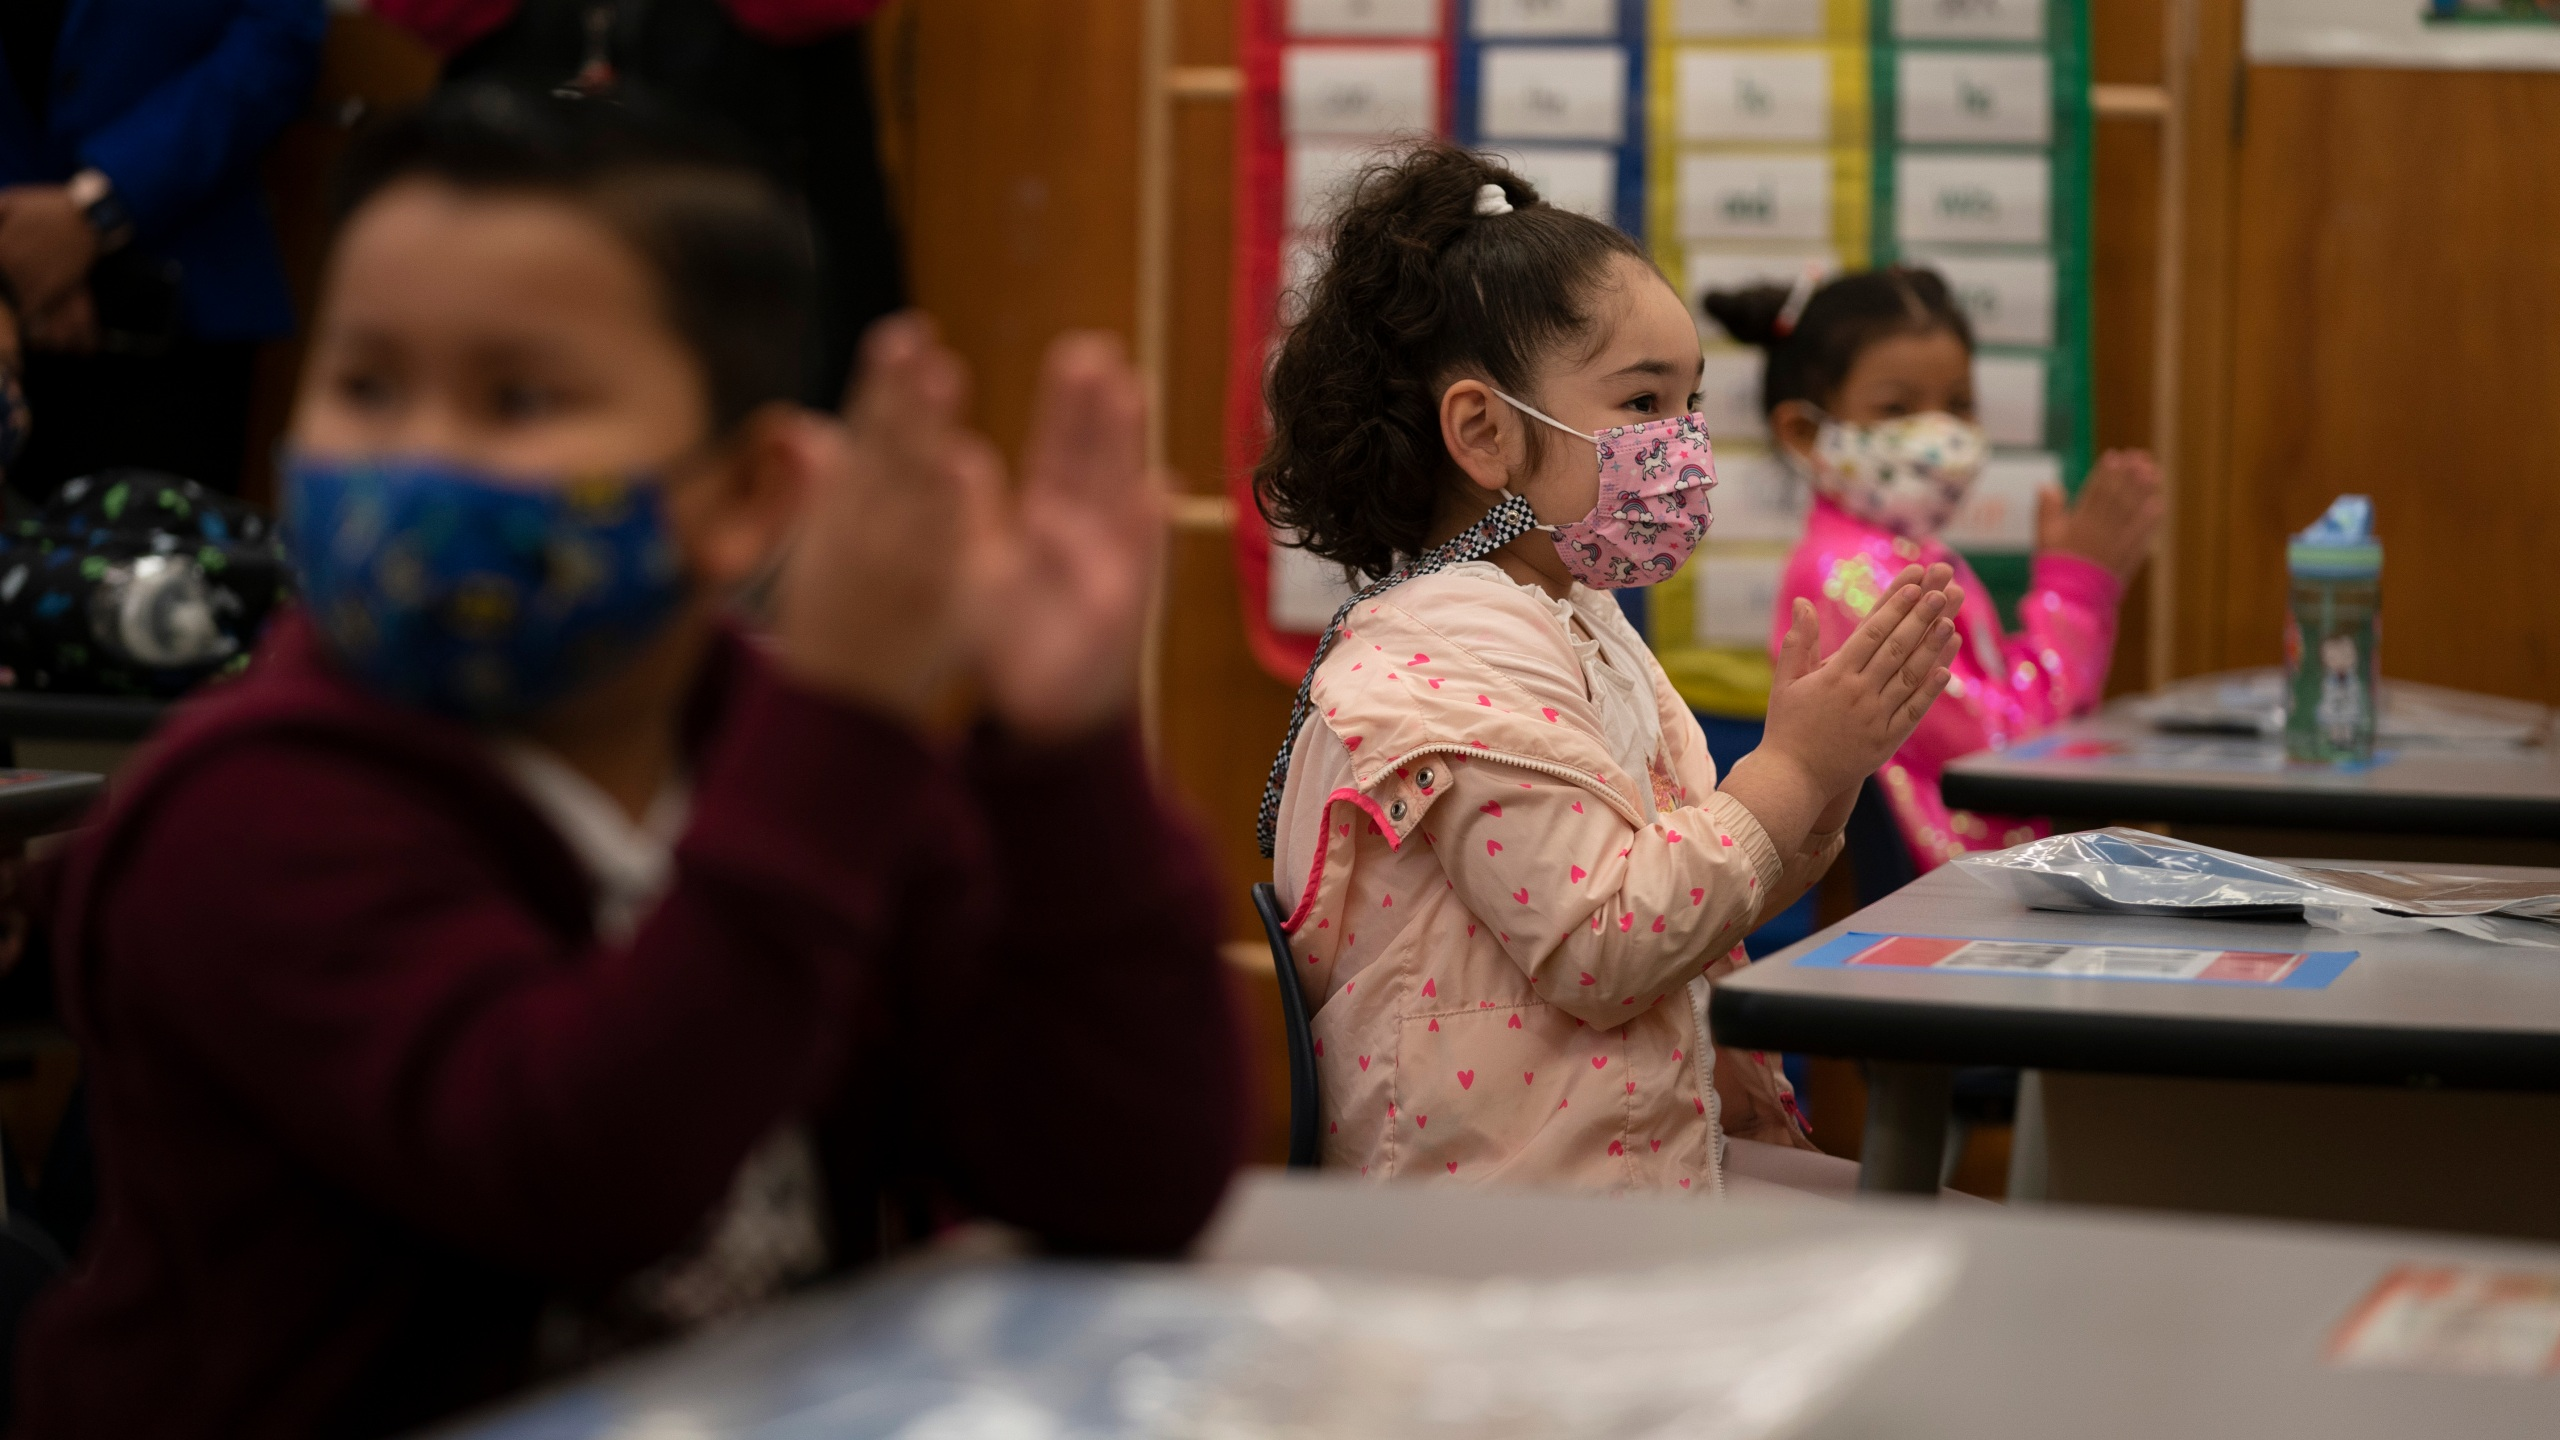 First graders applaud while listening to their teacher in a classroom on the first day of in-person learning at Heliotrope Avenue Elementary School in Maywood on April 13, 2021. (Jae C. Hong / Associated Press)